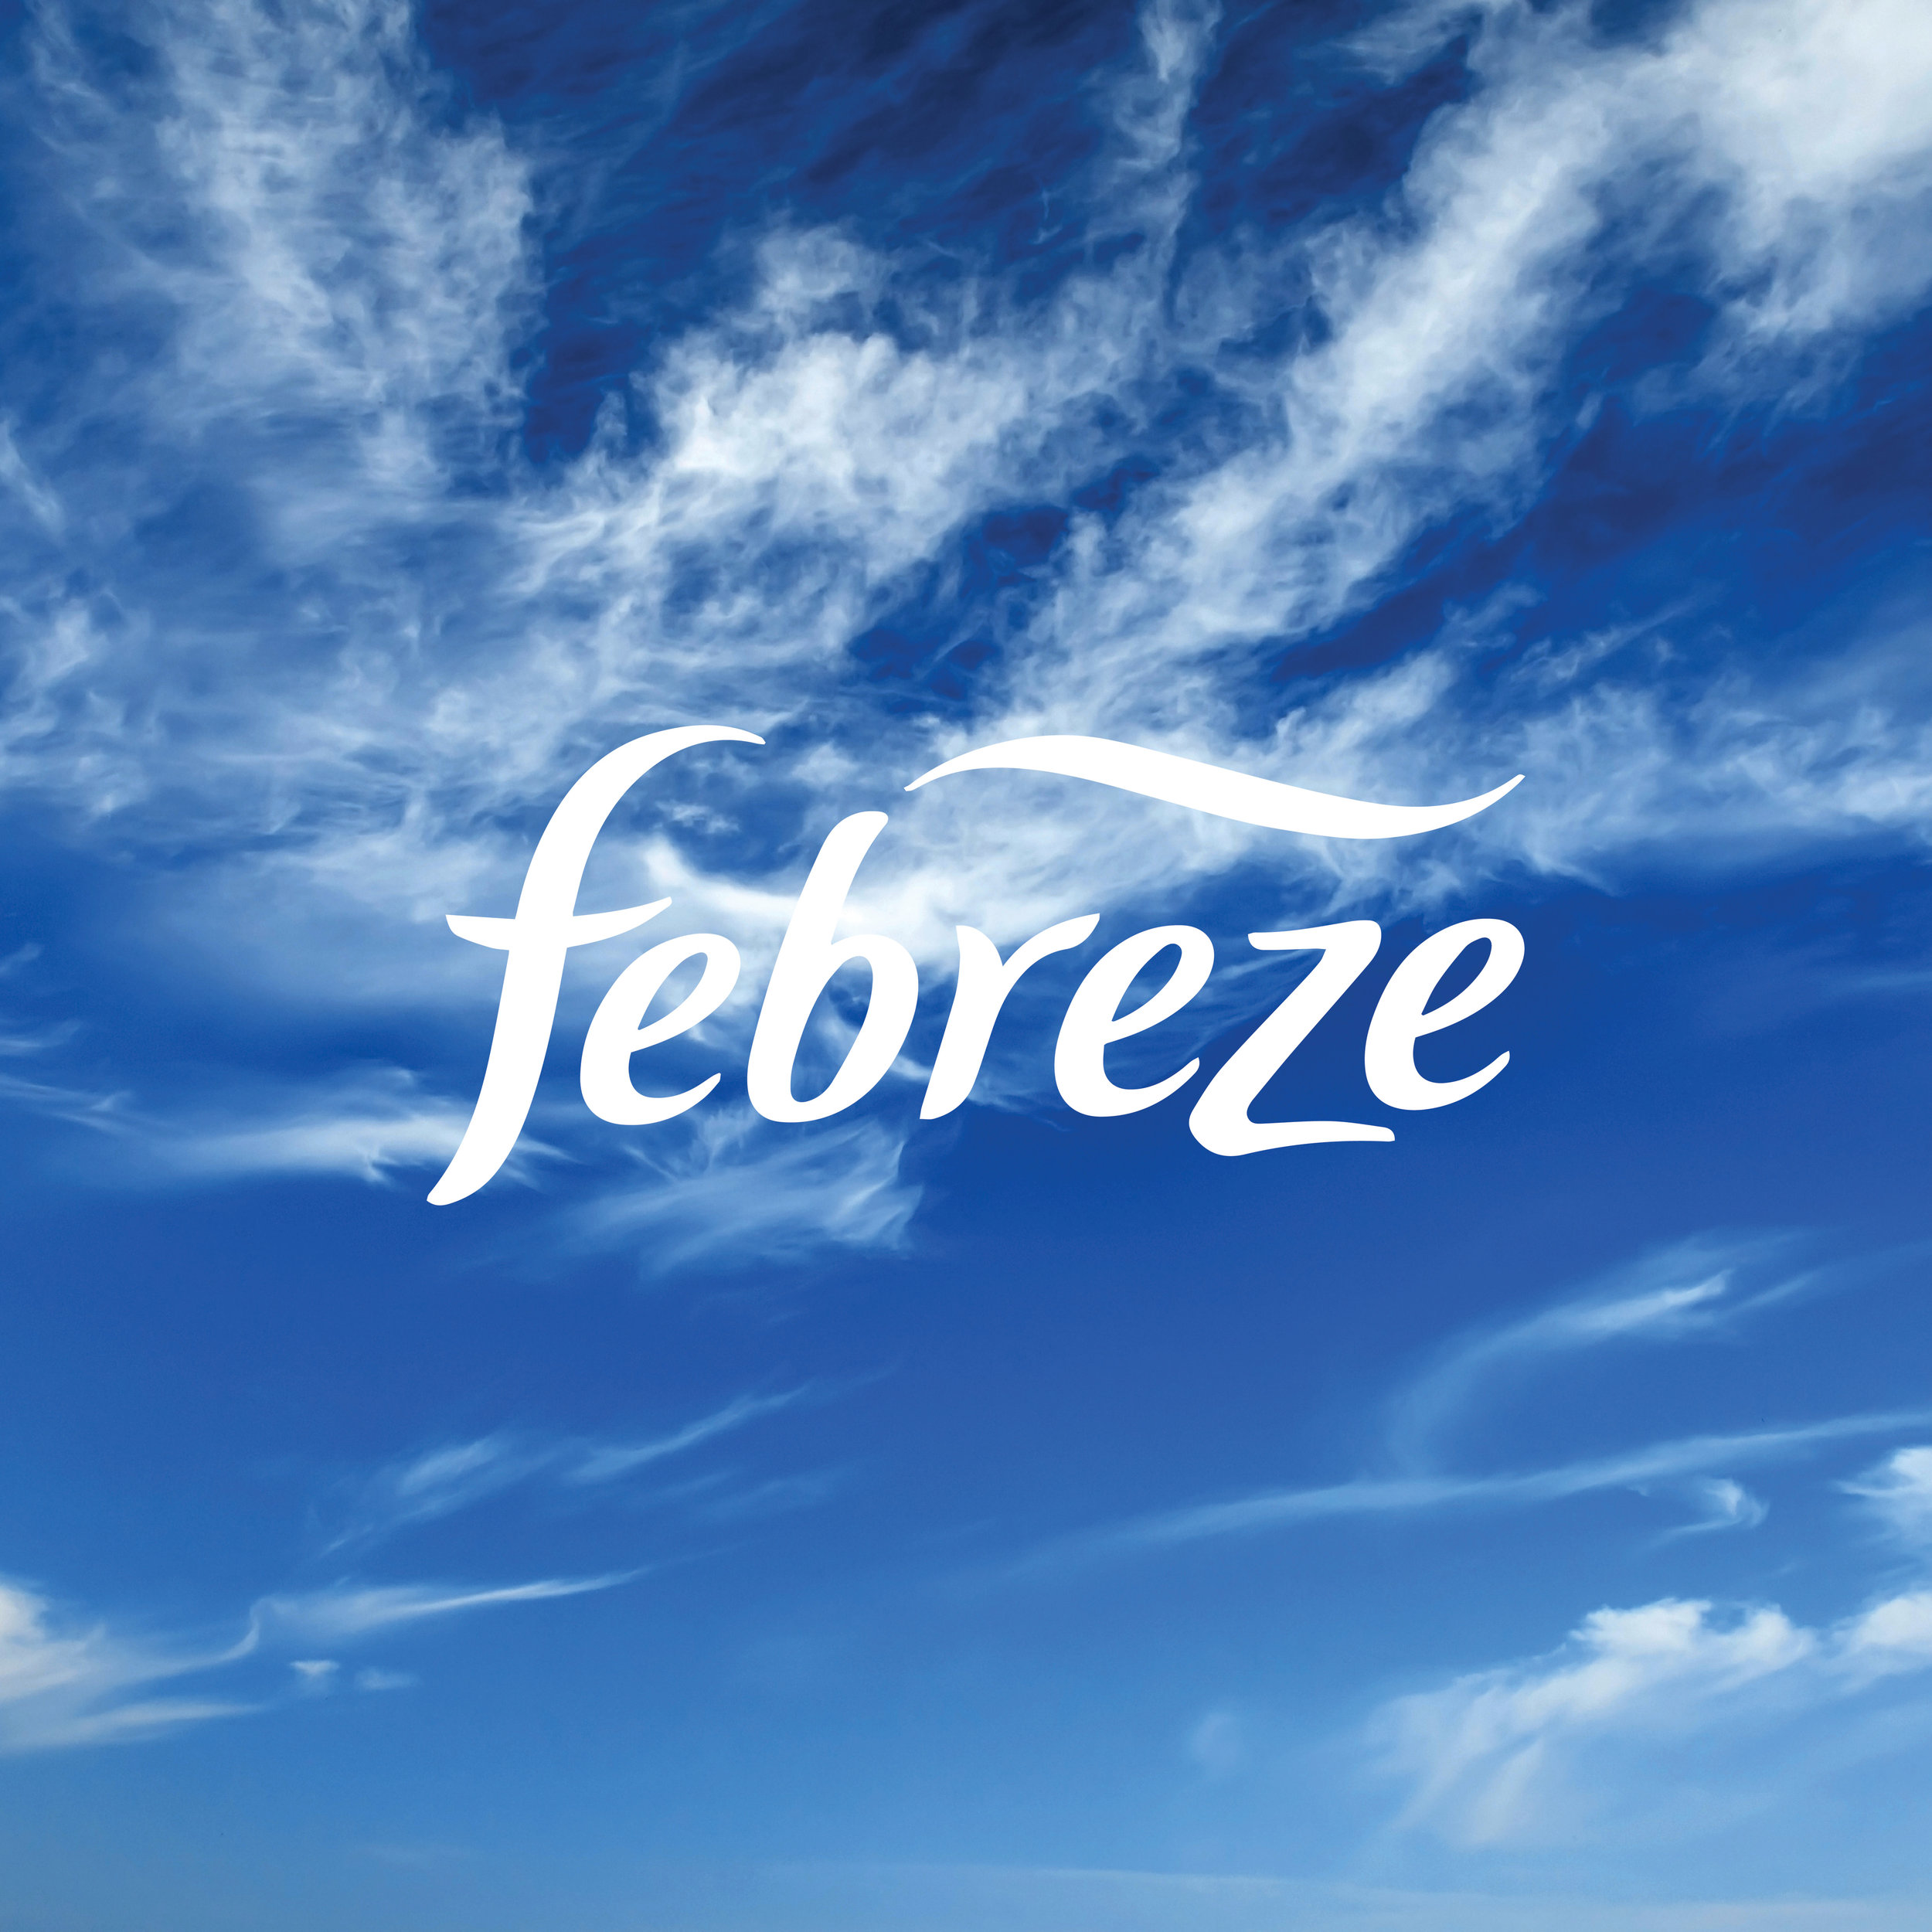 Febreze Brand Name Created by Lexicon Branding